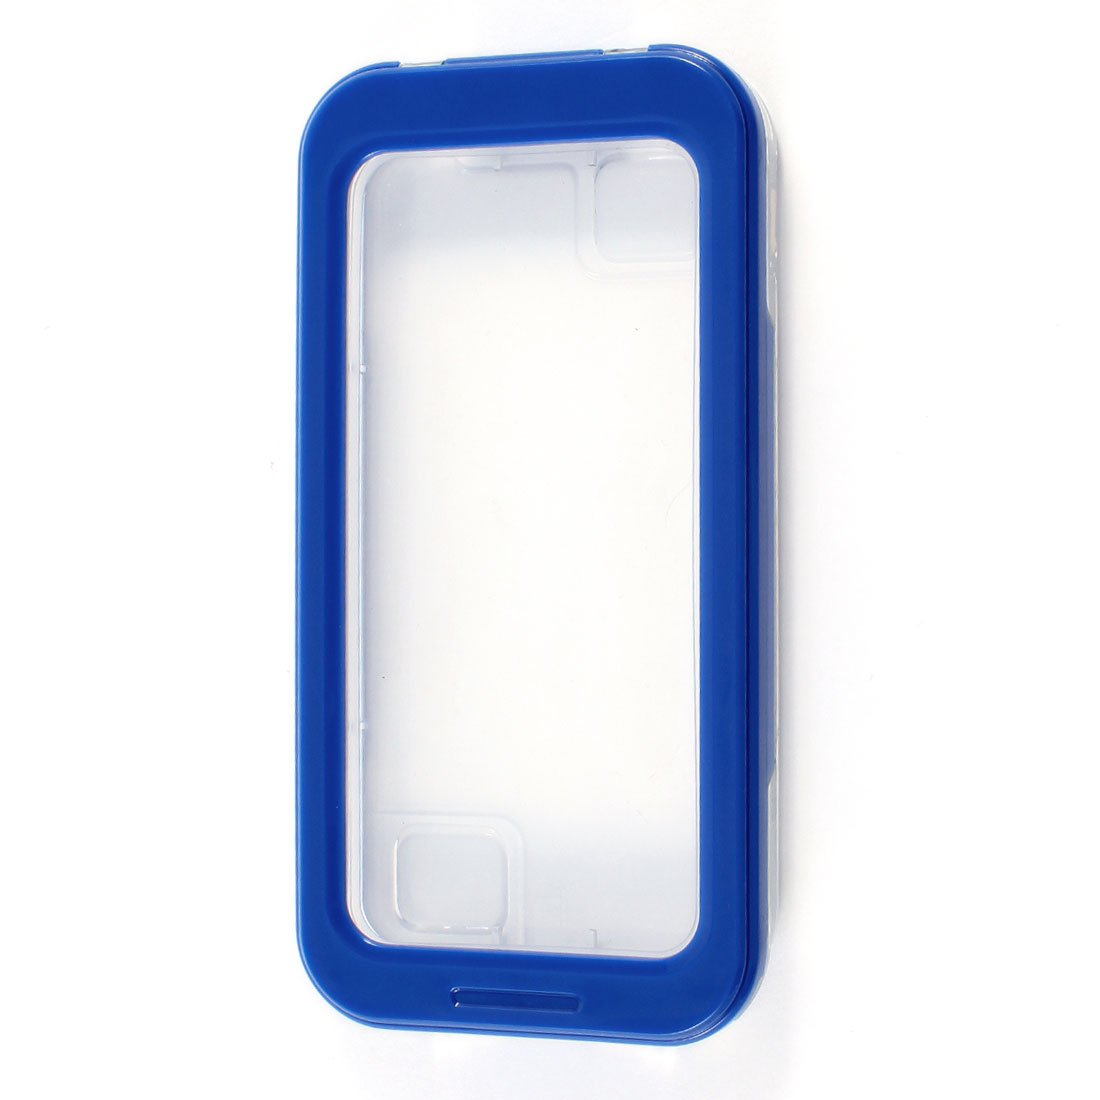 Blue Waterproof Sandproof Dirt Proof Case for iPhone 4 4G 4S 5 5G 4GS w Strap